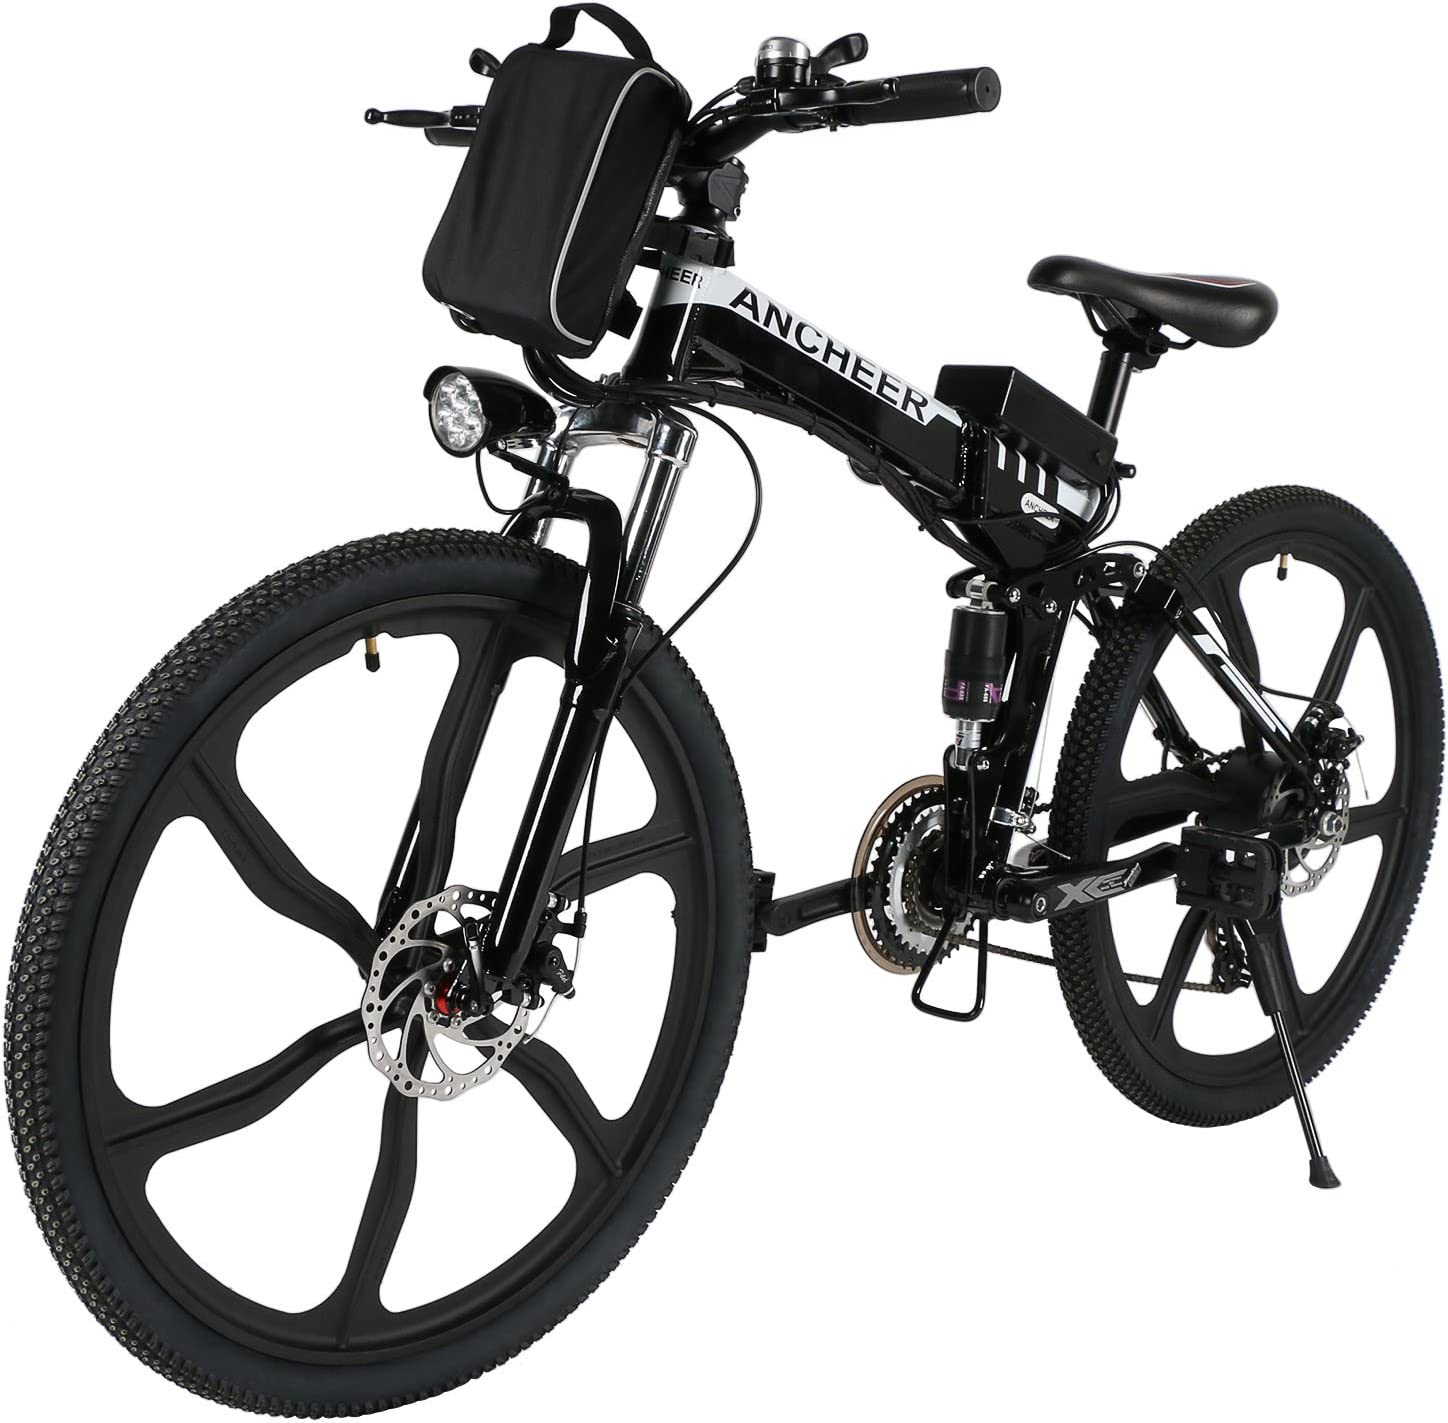 Speedrid Ebike 26 27.5 Electric Bike, Electric Mountain Bike Foldable Unfoldable with 36V 7.8 Ah 10.4Ah Lithium-ion Battery, Professional 21 24 Speed Gears